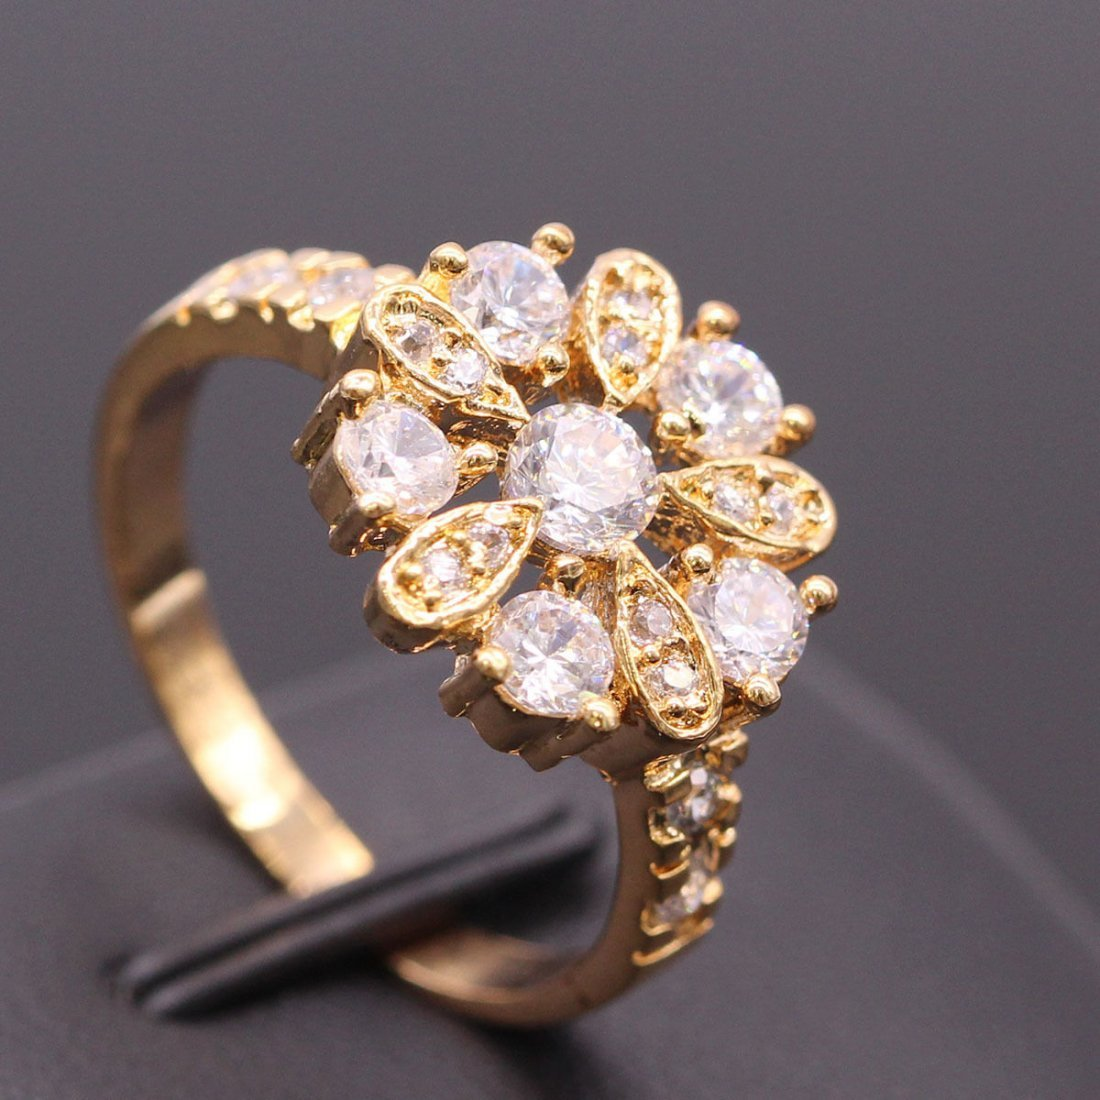 White Zircon Crystal Ring 18K Gold Plated Ring 7